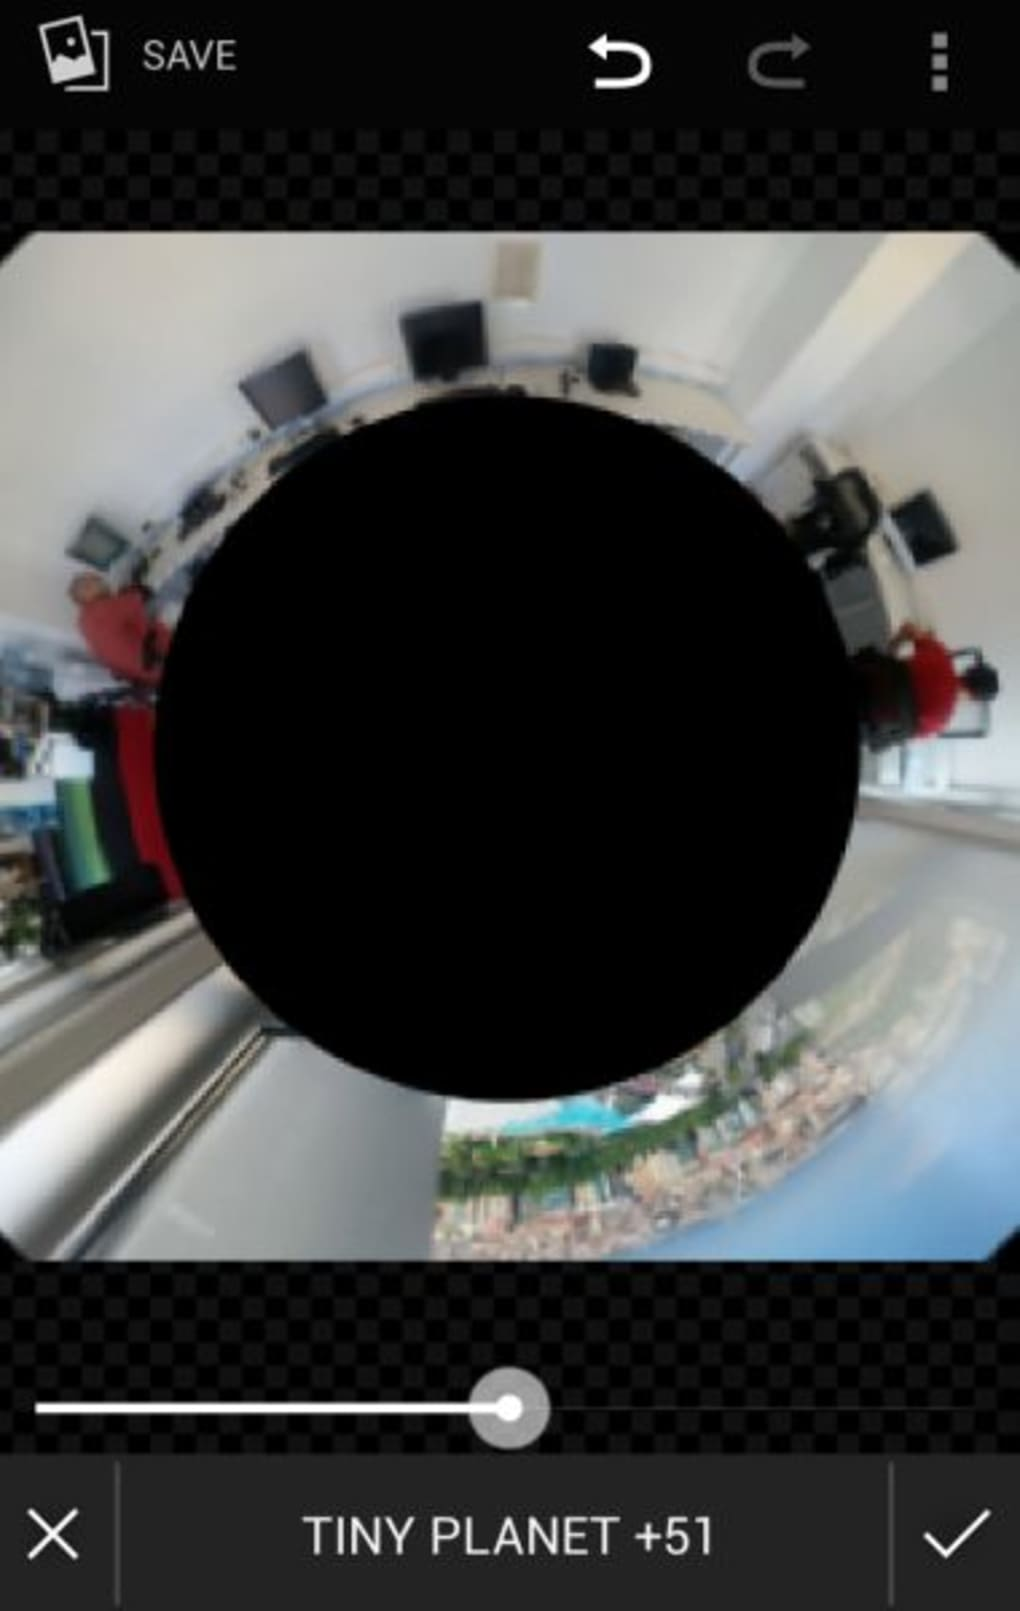 Android 4 3 Camera app (Android) - Download